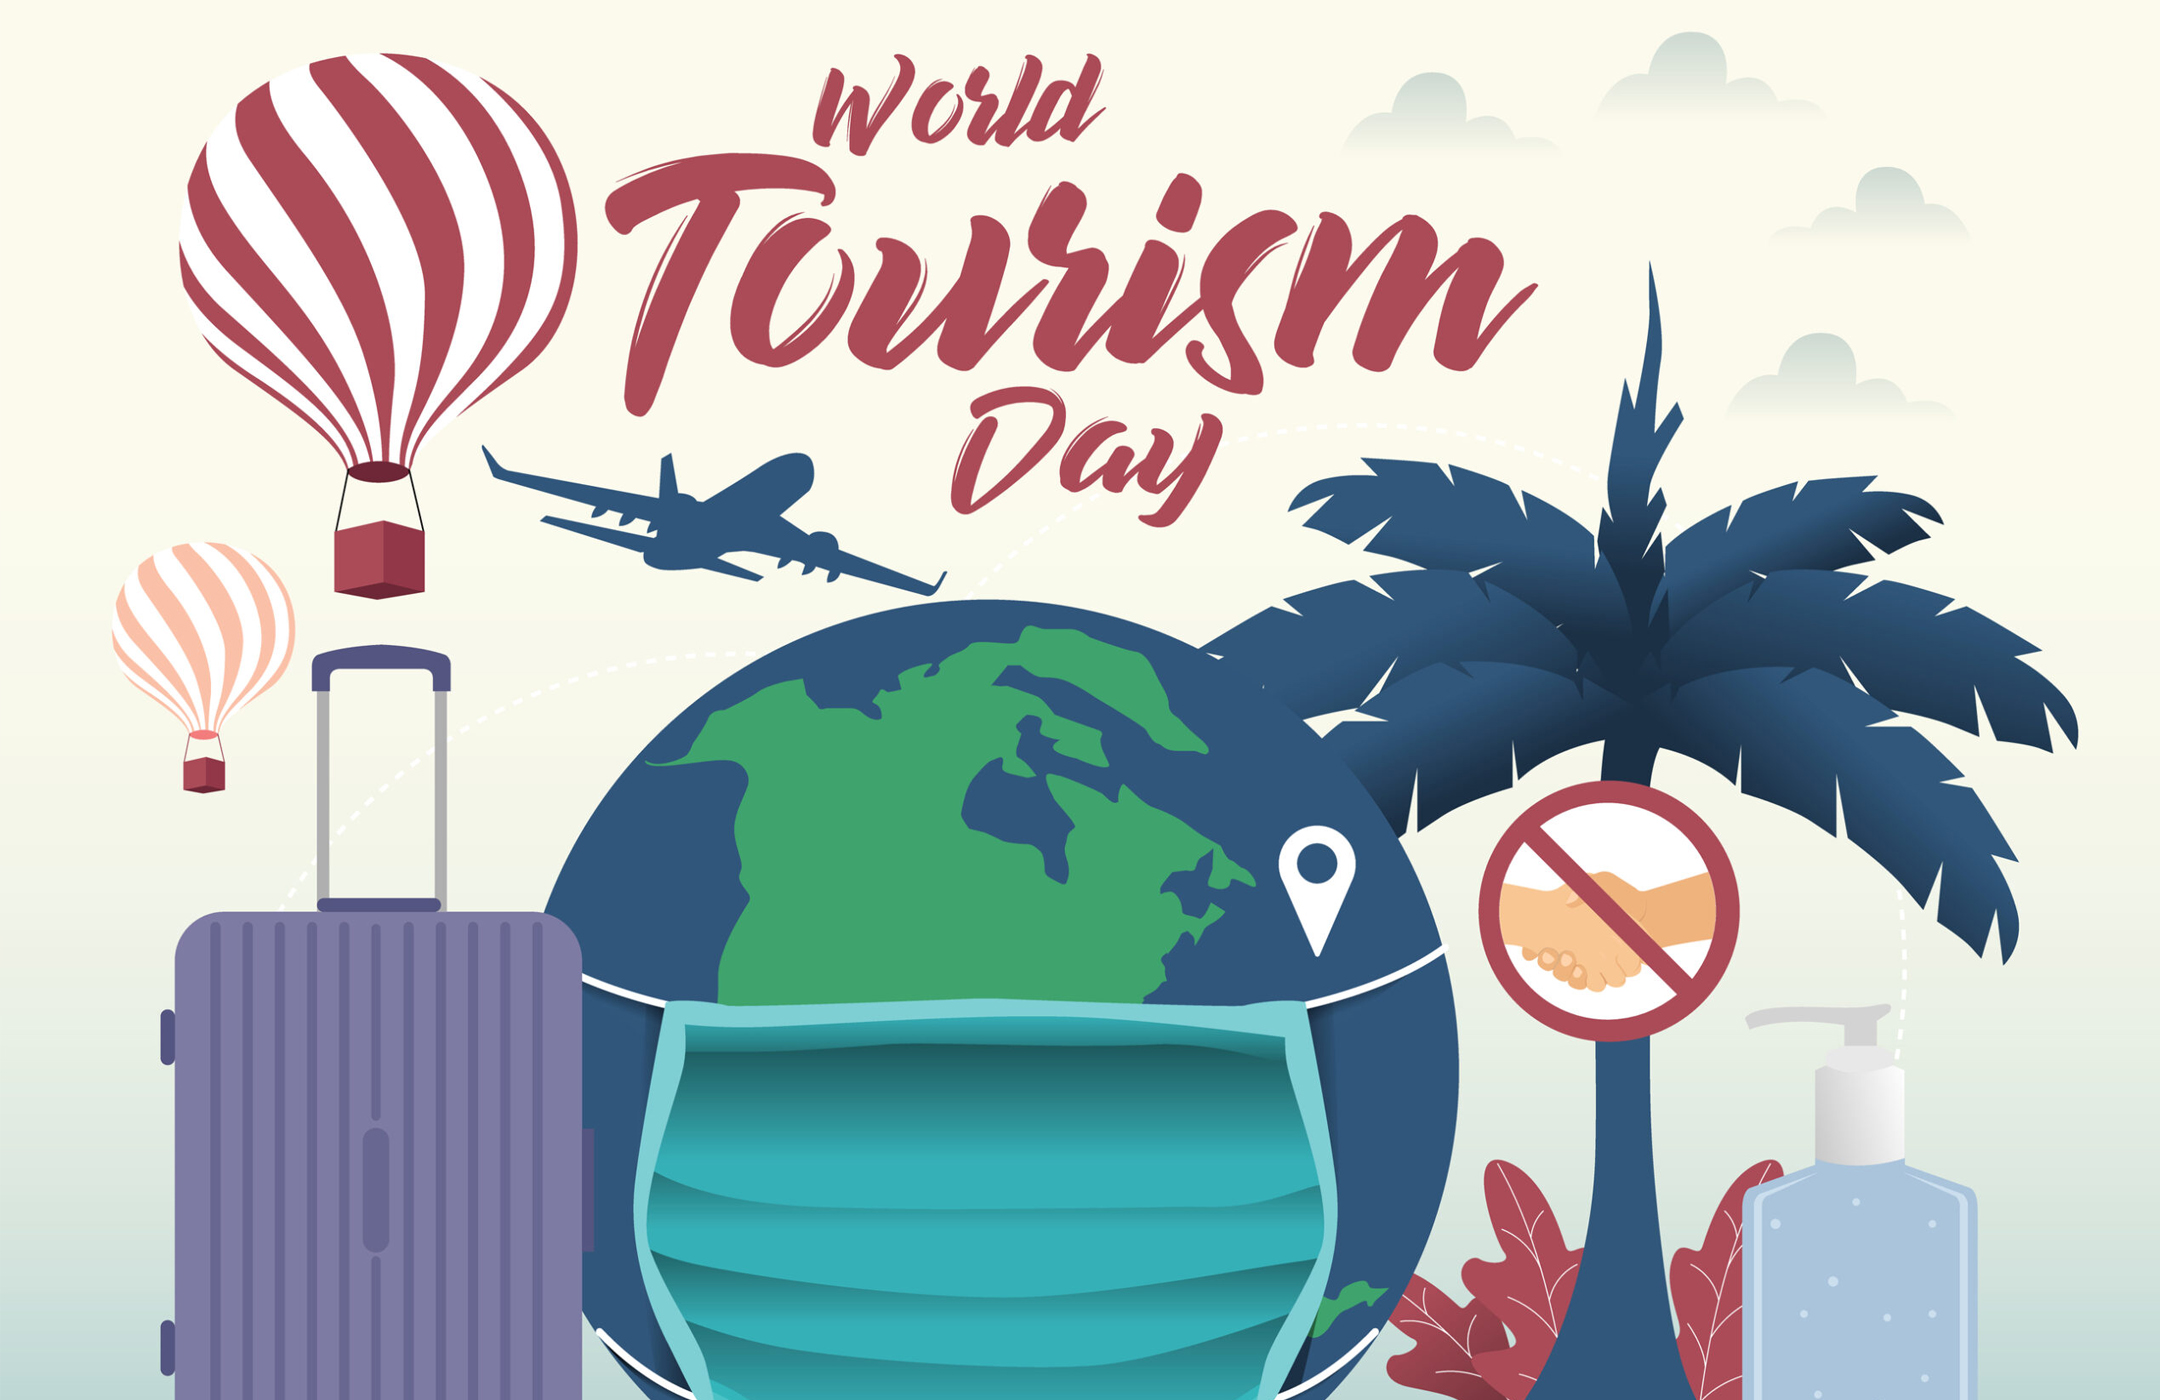 albatros-world-tourism-event-2020